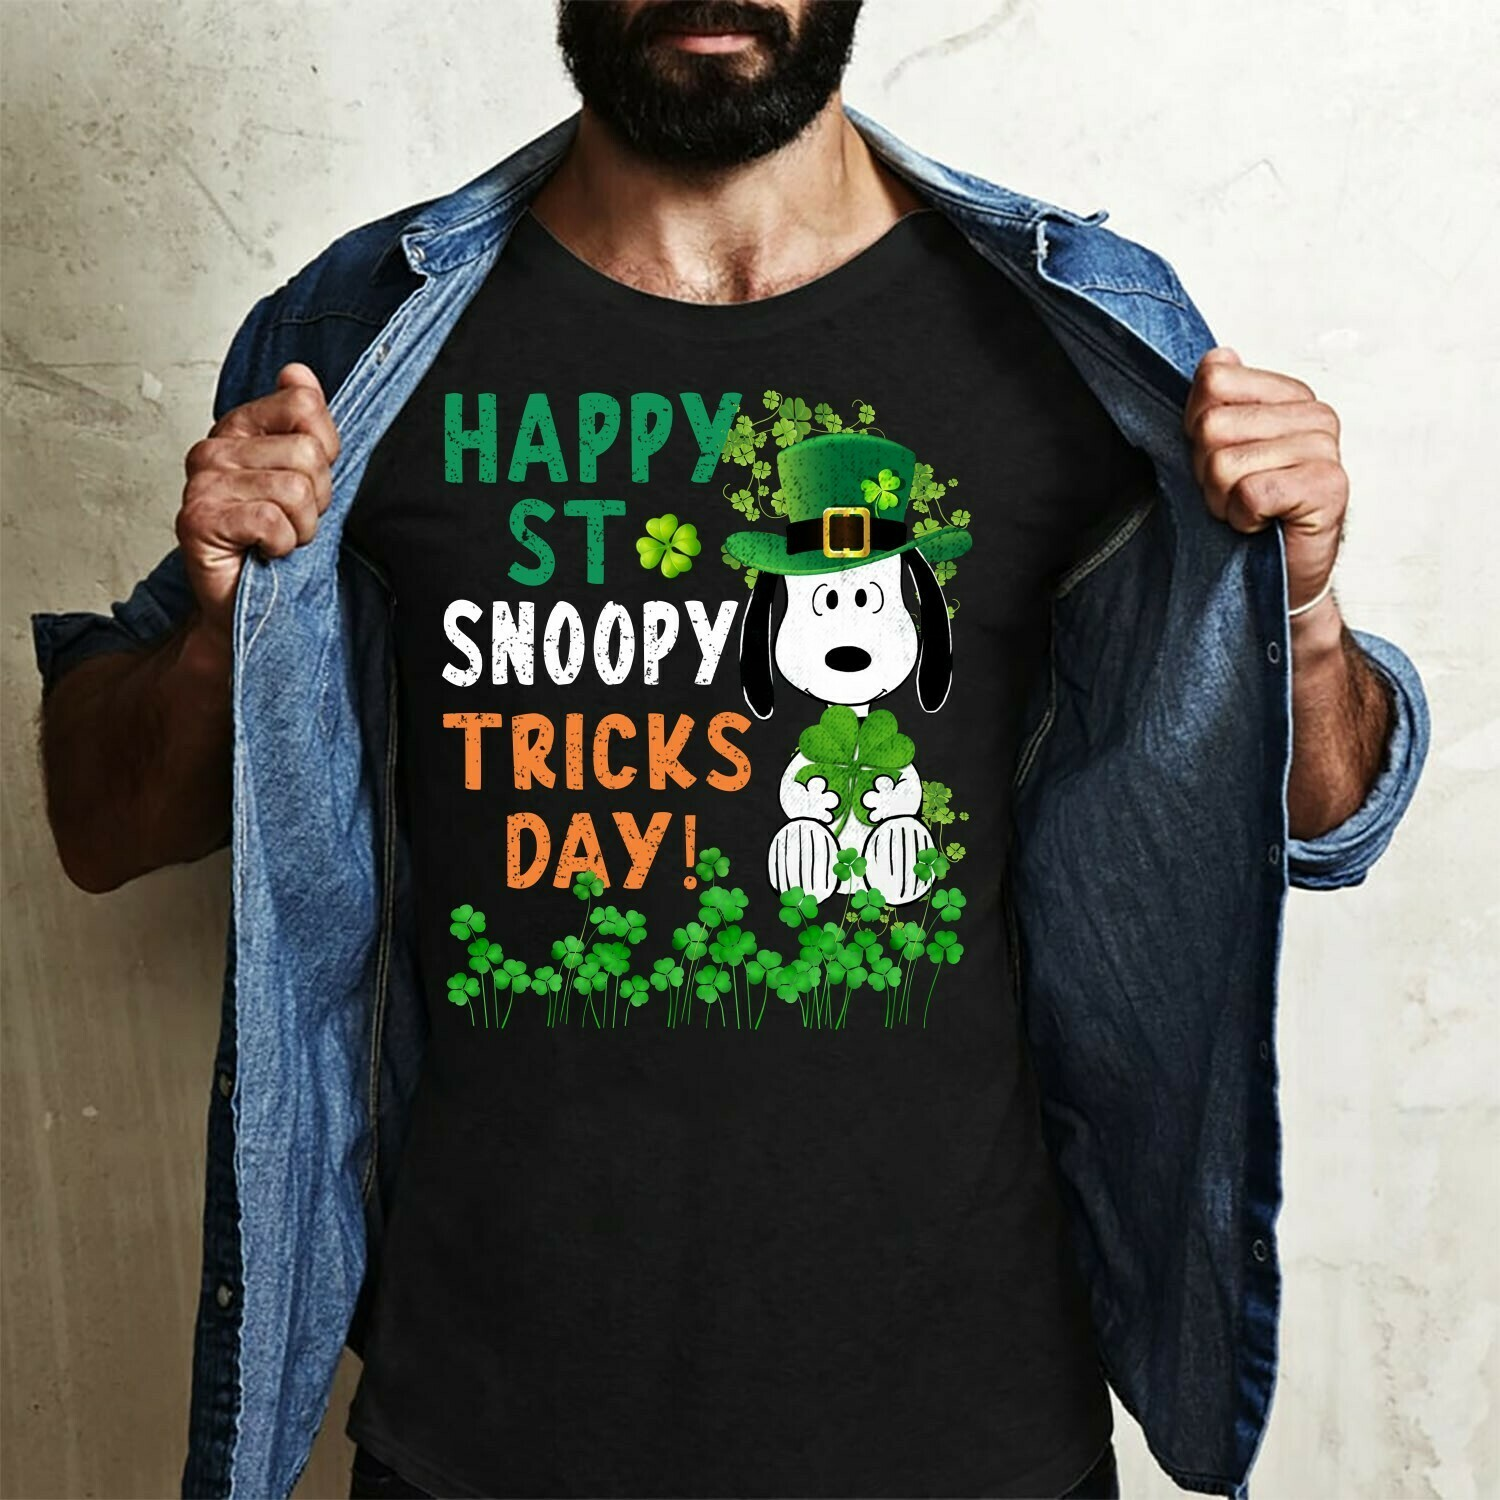 Happy St Irish Snoopy Tricks Day Green Shamrock Hats Peanuts Feelin' Lucky Four leaf Clover Charm  T-Shirt Hoodie Sweatshirt Sweater Tee Kids Youth Gifts Jolly Family Gifts